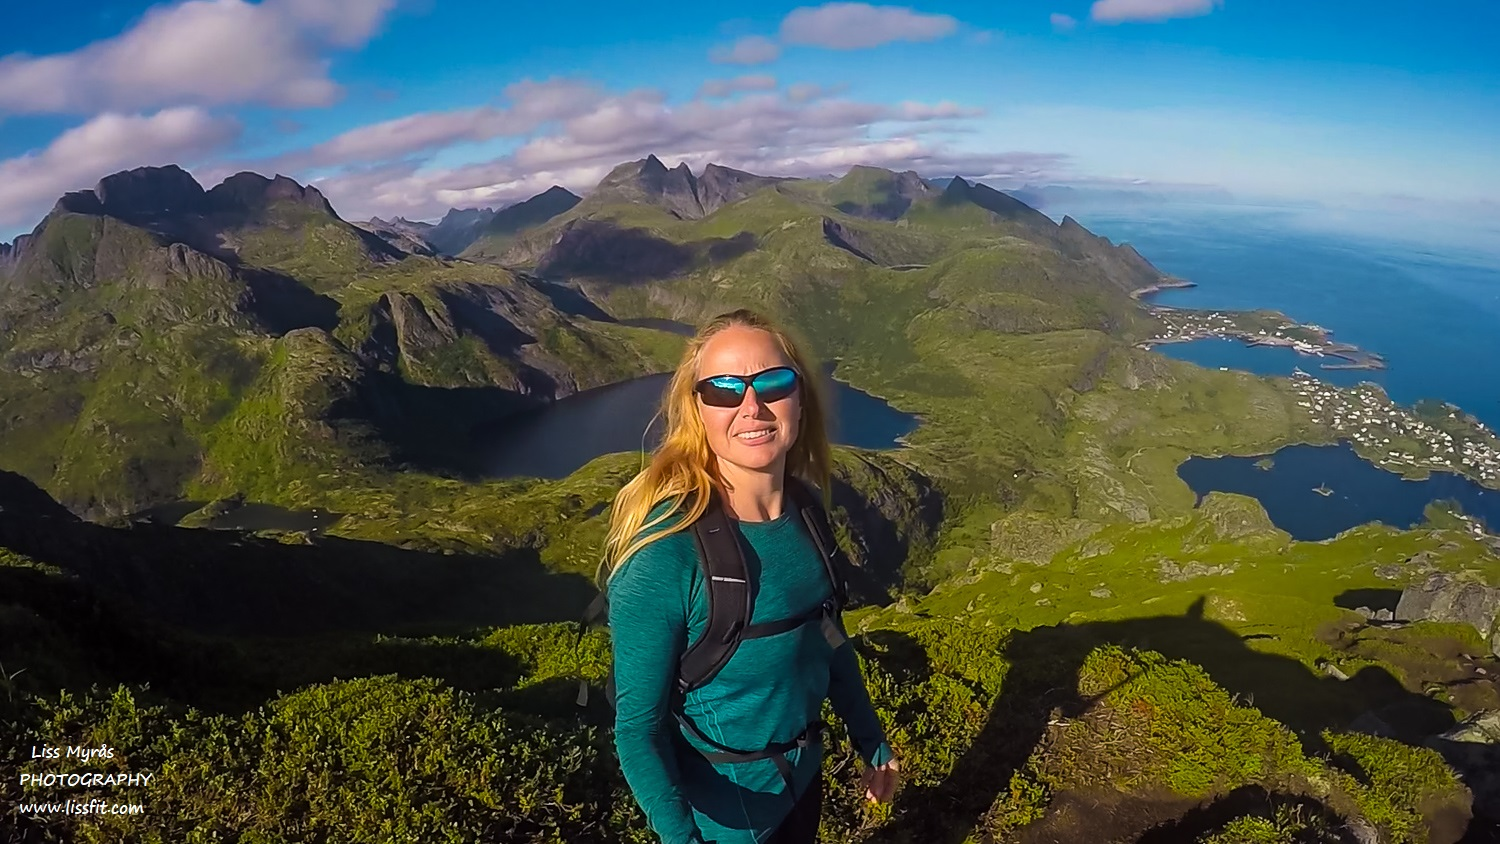 Tindstinden hike adventures Lofoten Moskenes Munkebu trail lake vandring steep mountains landscape